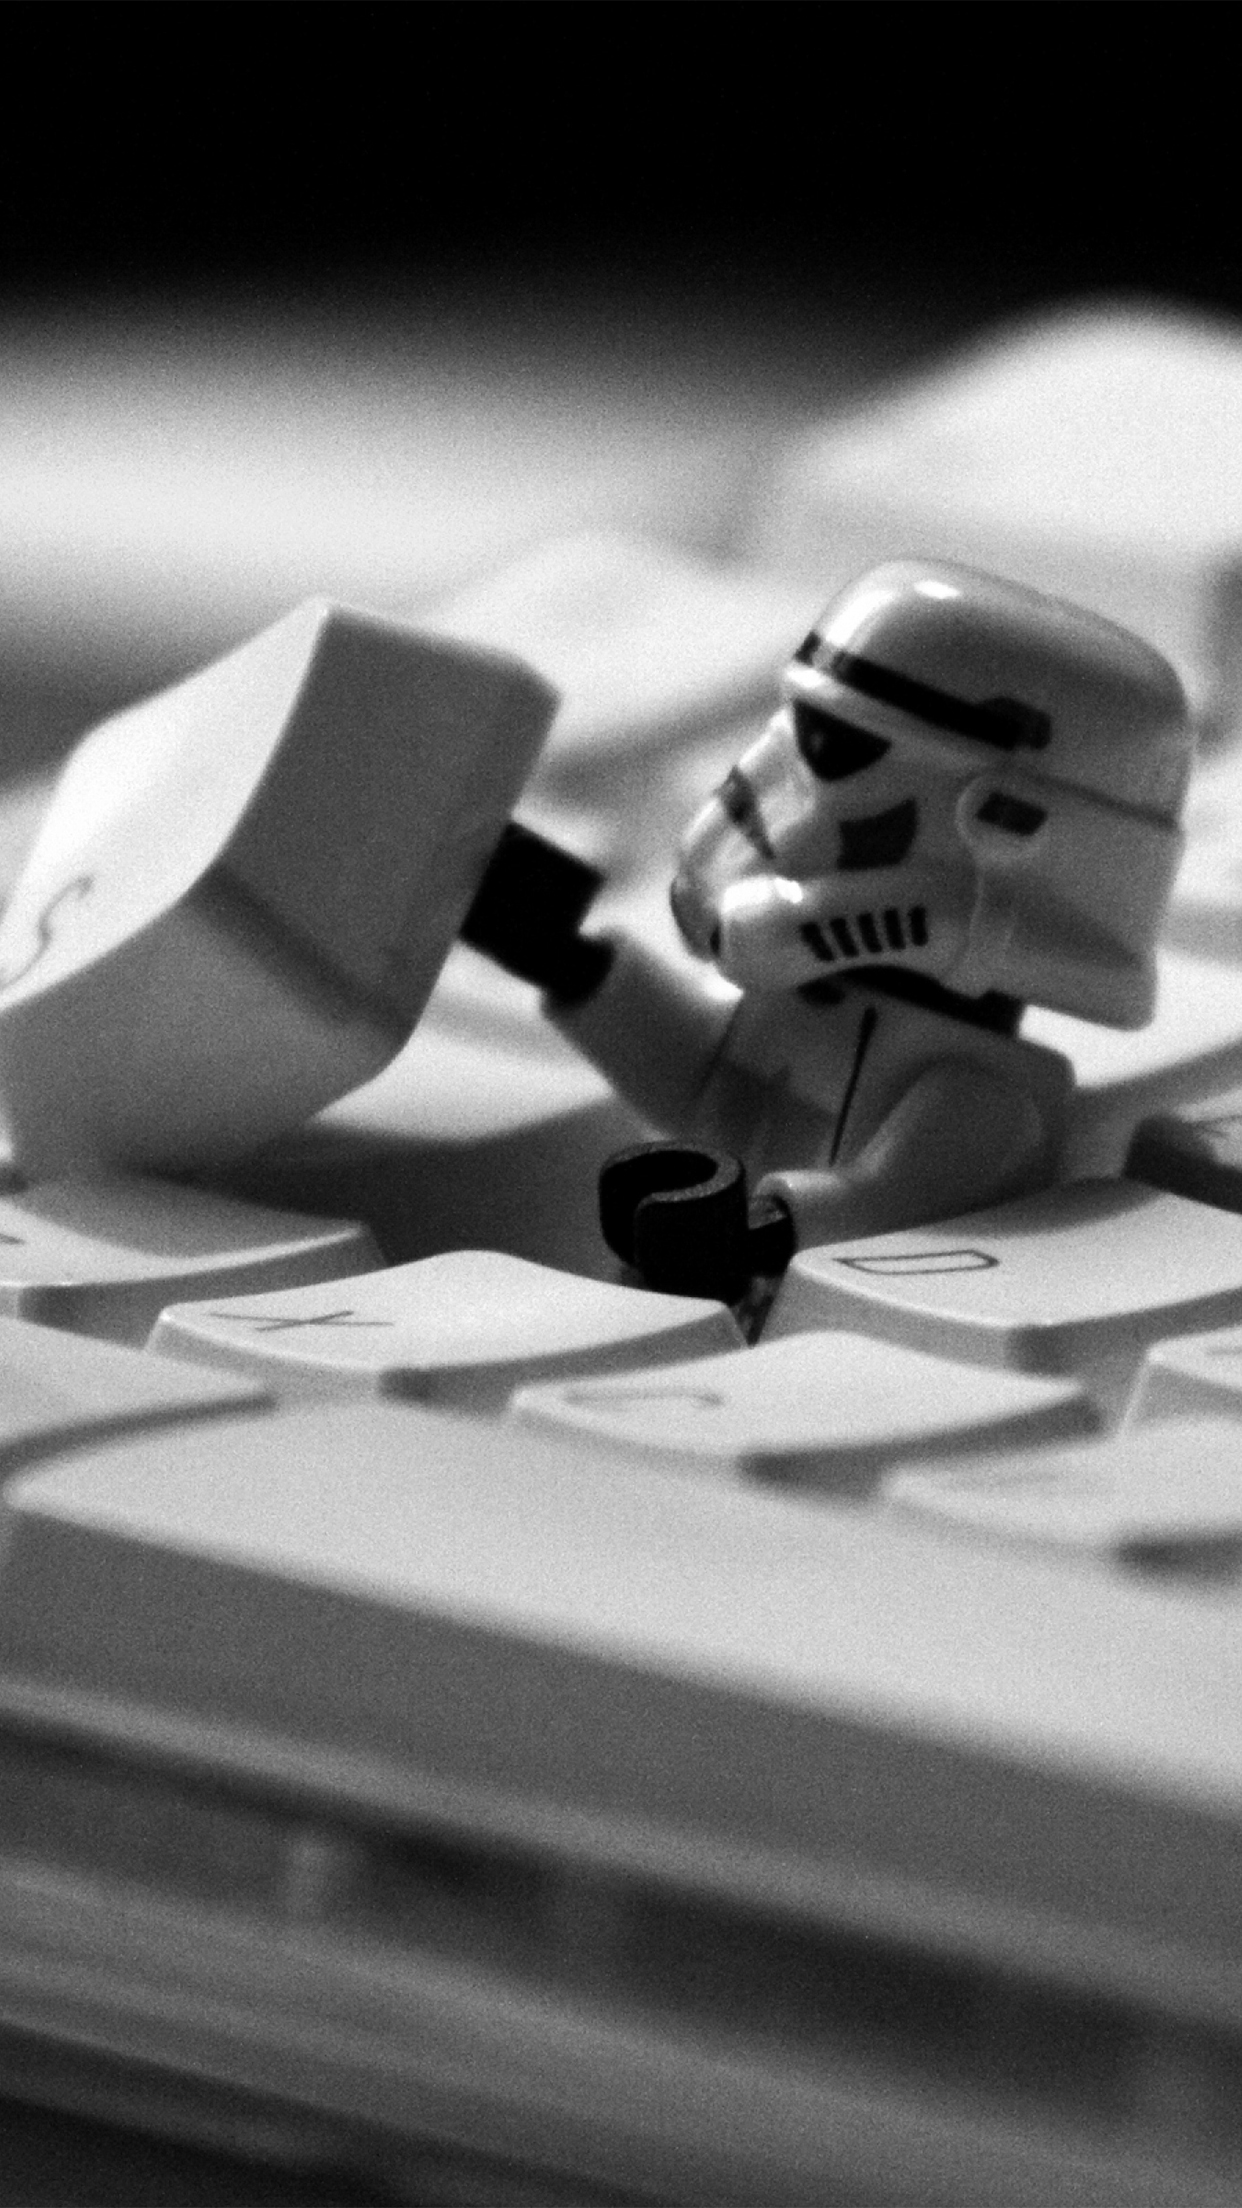 lego star wars keyboard 3wallpapers parallax iPhone Lego star wars keyboard